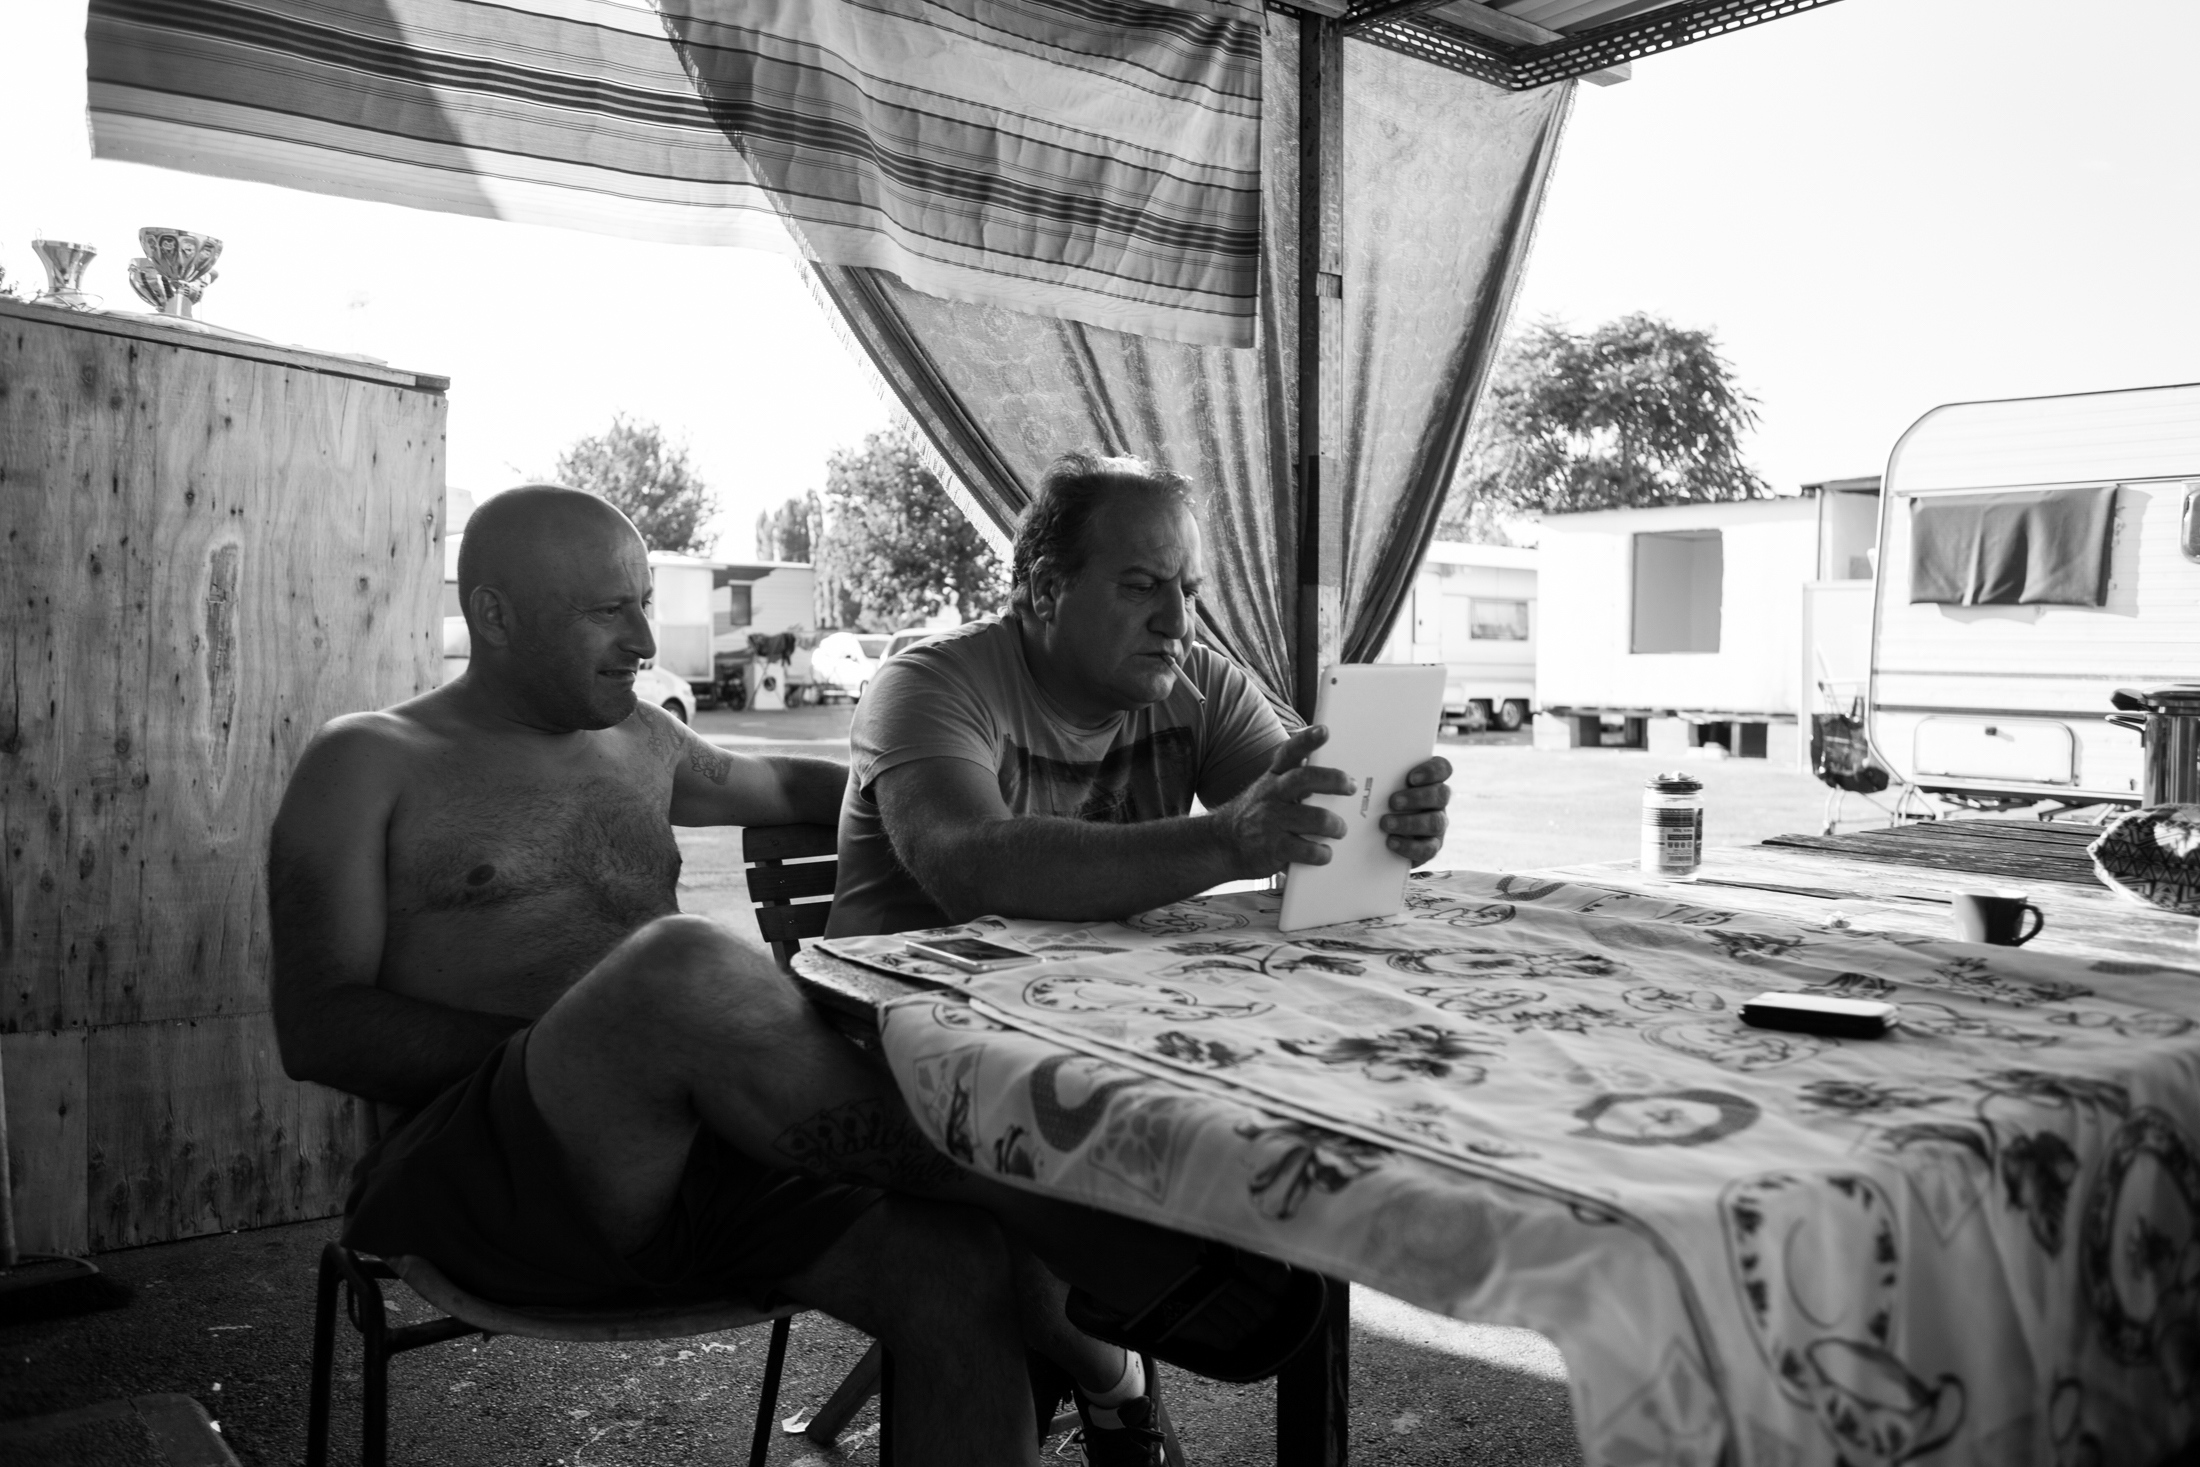 August 2017, nomad camp of Castelnuovo Rangone, Emilia-Romagna, Italy. Two adults in the community watch some videos from the tablet.